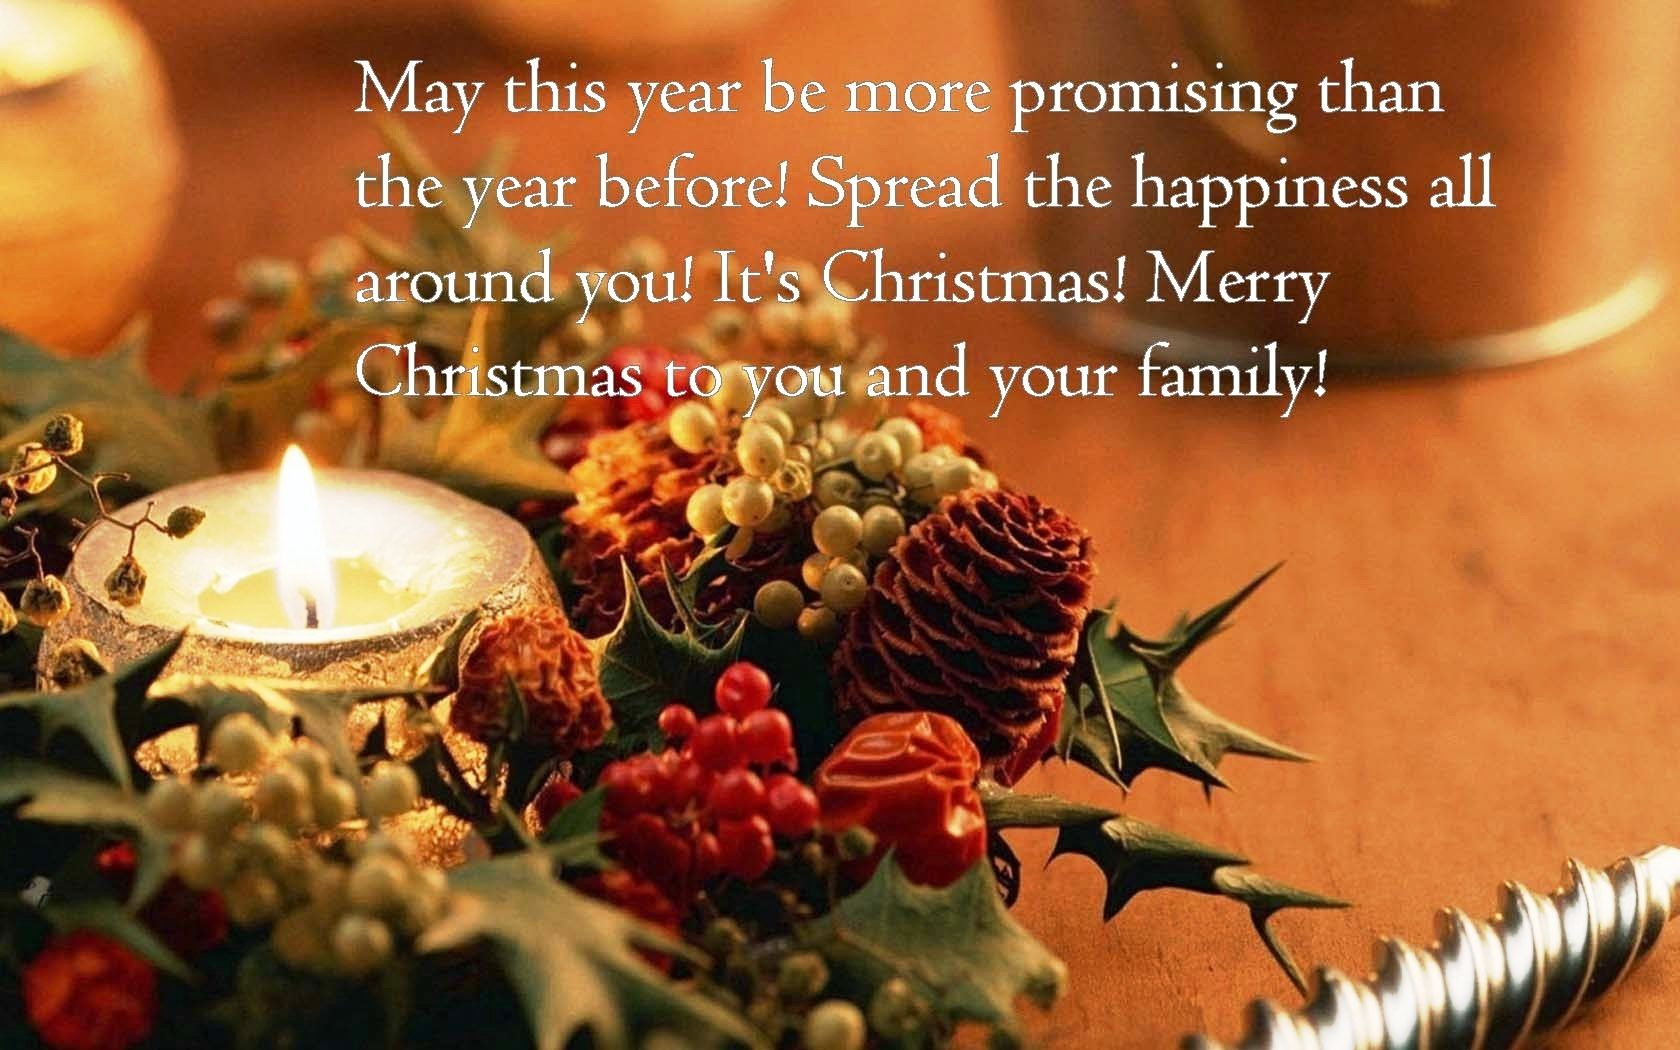 Merry Christmas To You And Your Family Pictures Photos And Images For Facebook Merry Christmas Wishes Quotes Christmas Wishes Quotes Merry Christmas Wishes